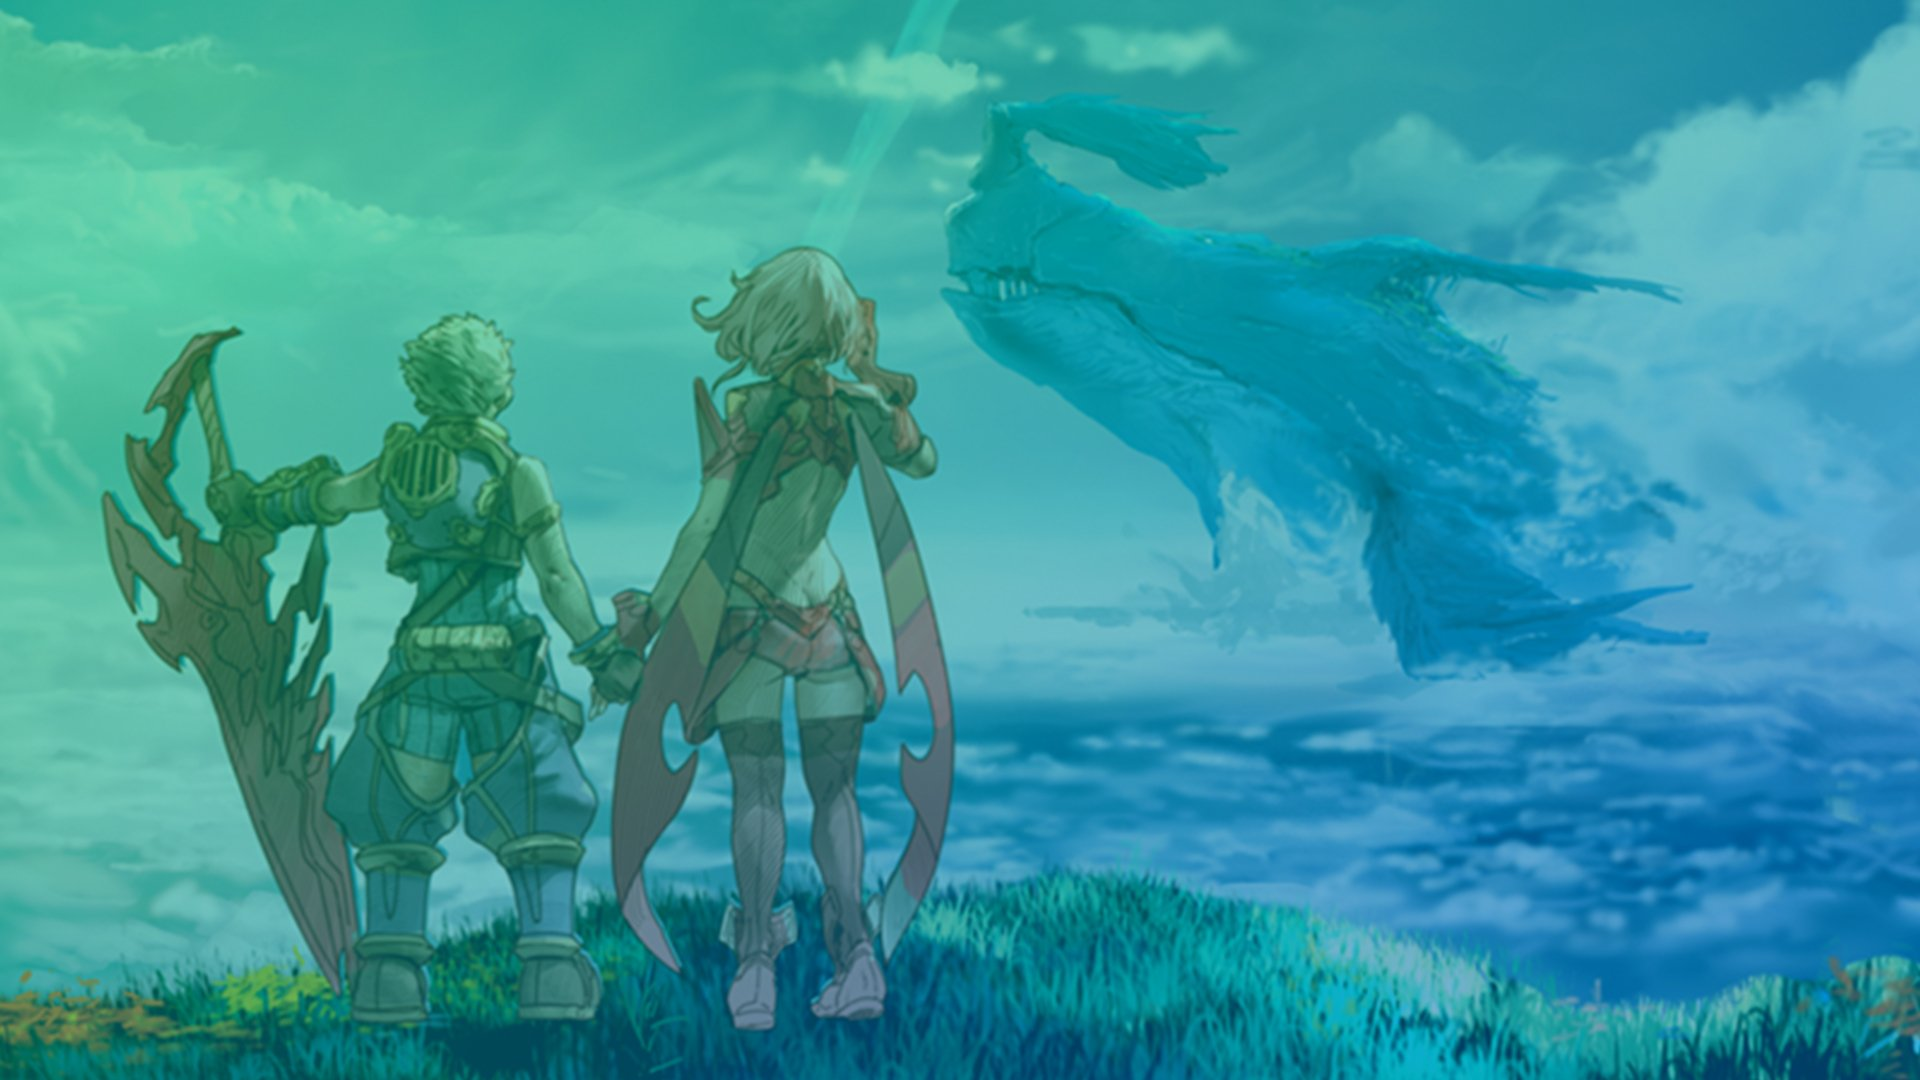 17 Xenoblade Chronicles 2 Hd Wallpapers Background Images